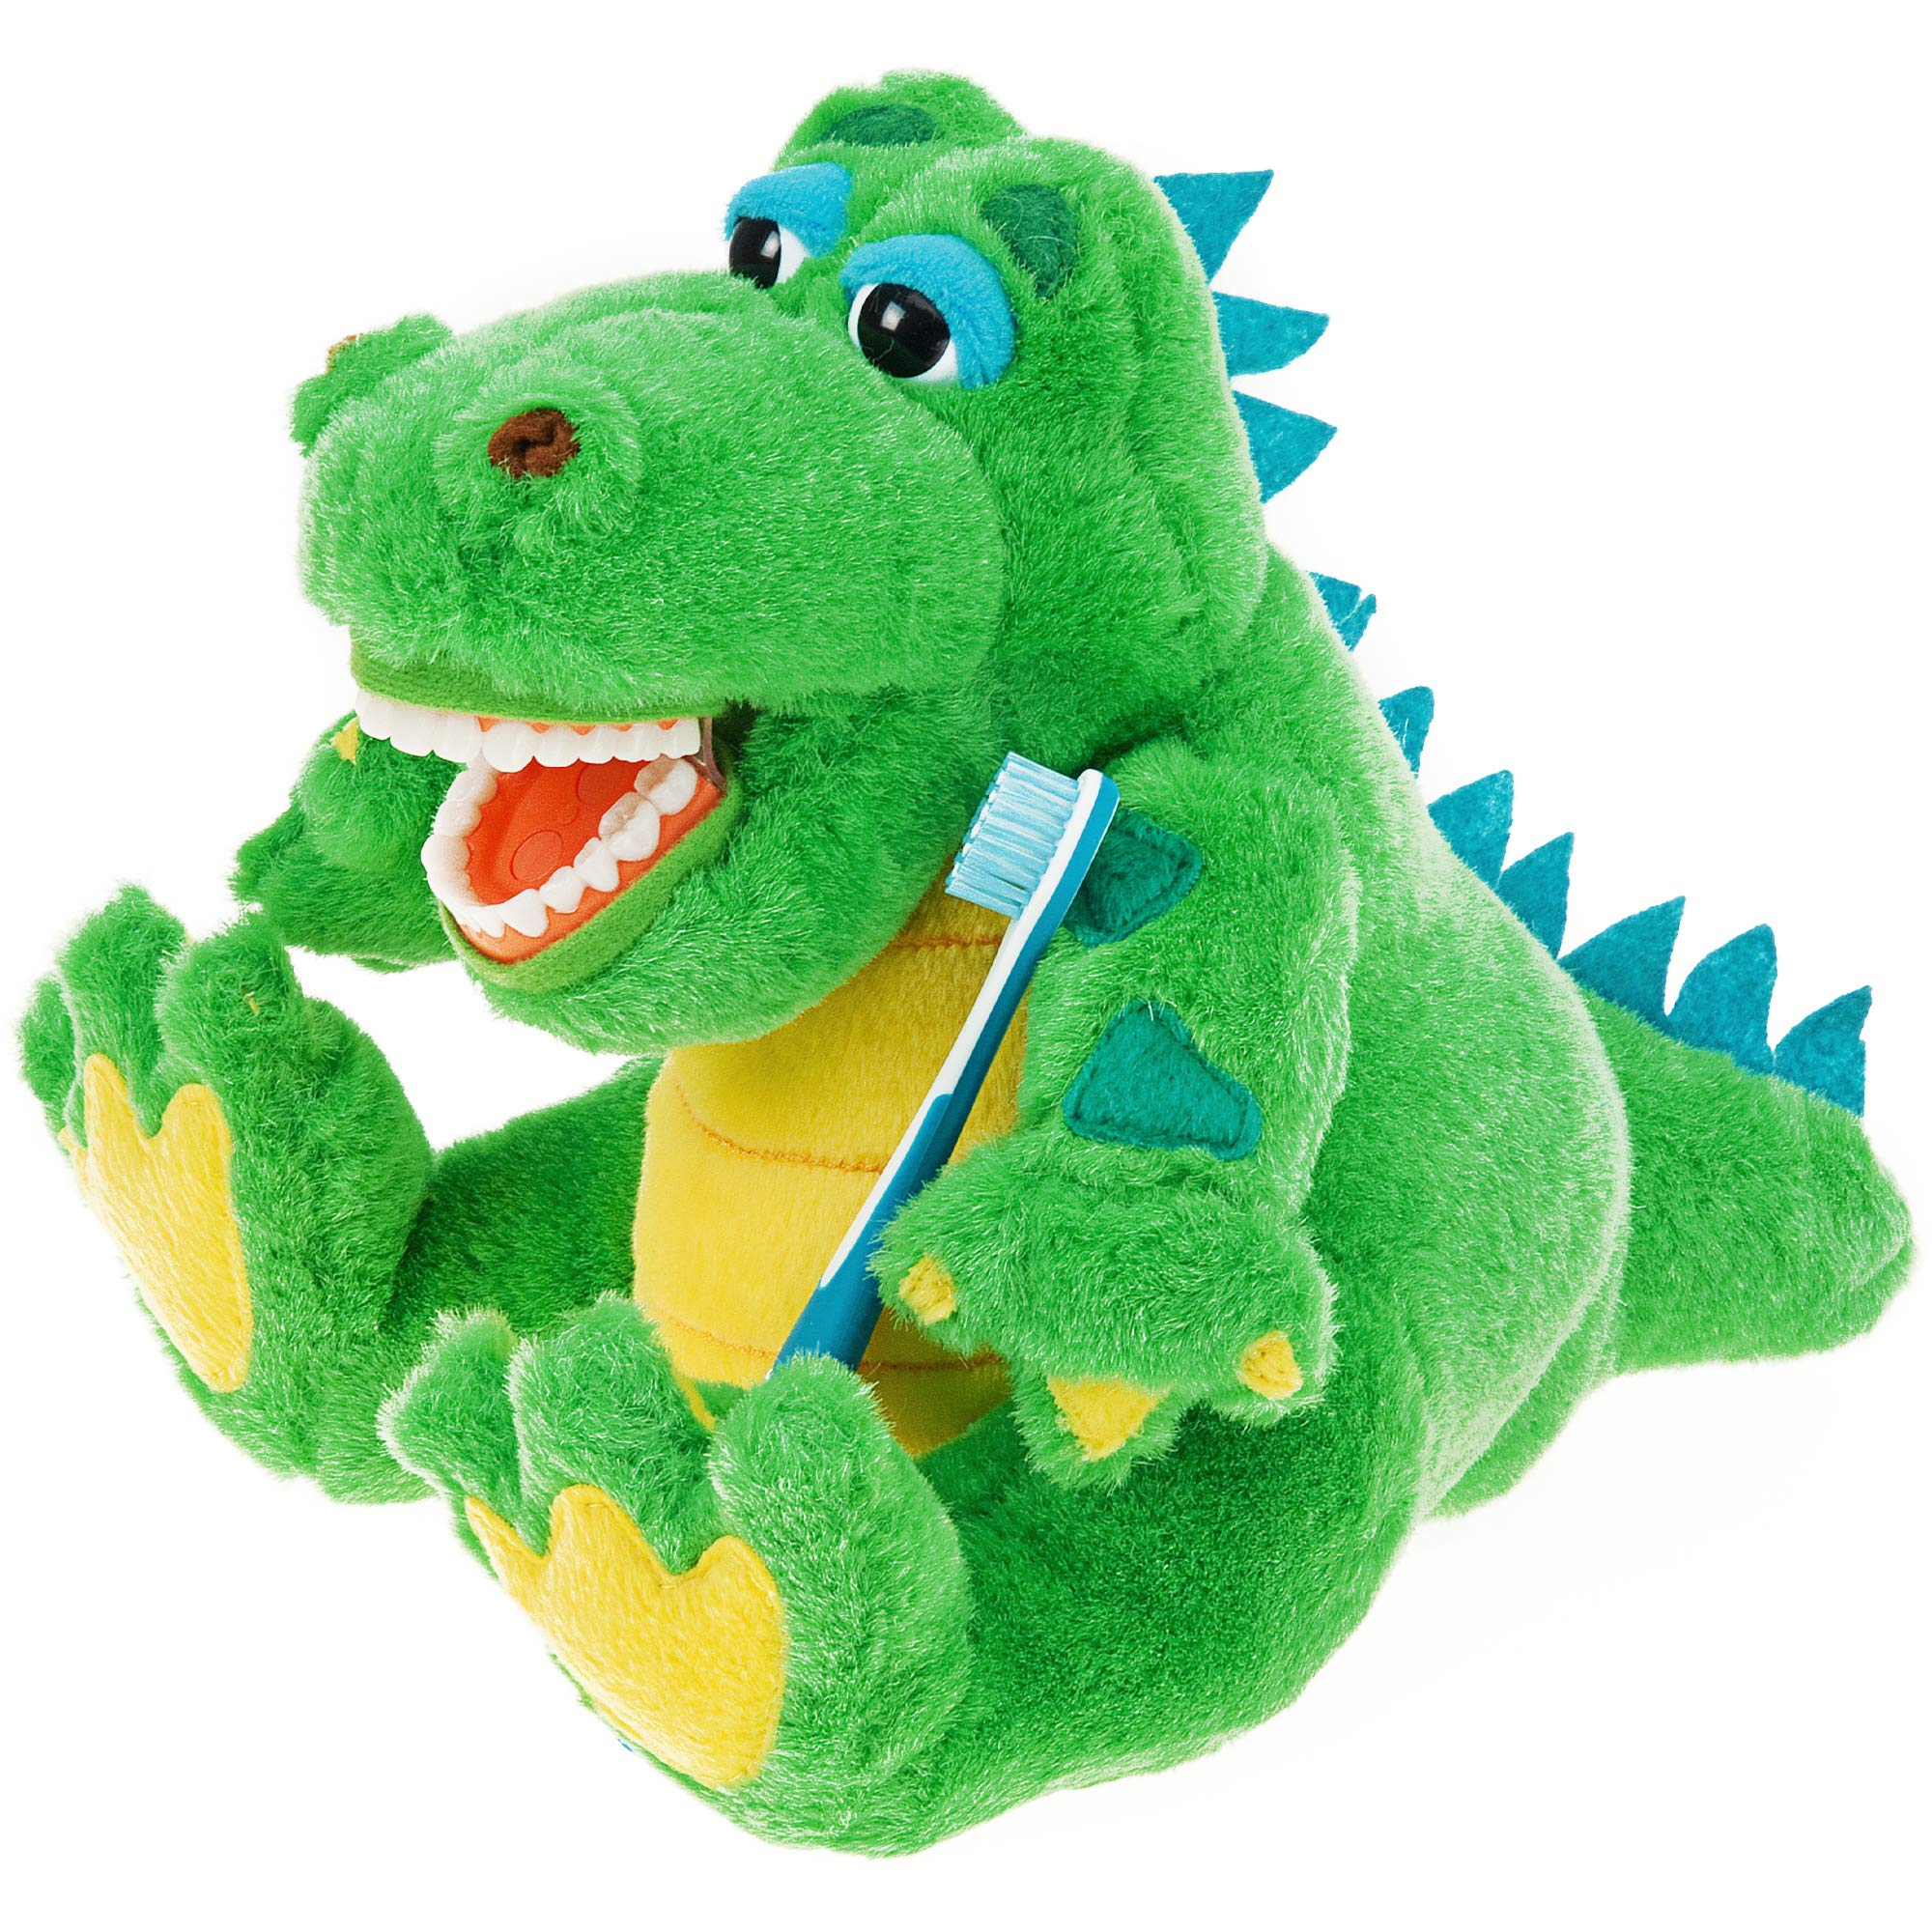 StarSmilez Kids Tooth Brushing Buddy Lil Allie Gator - Plush Dental Education Helper - Teach Children flossing and Overall Care for Mouth and Teeth